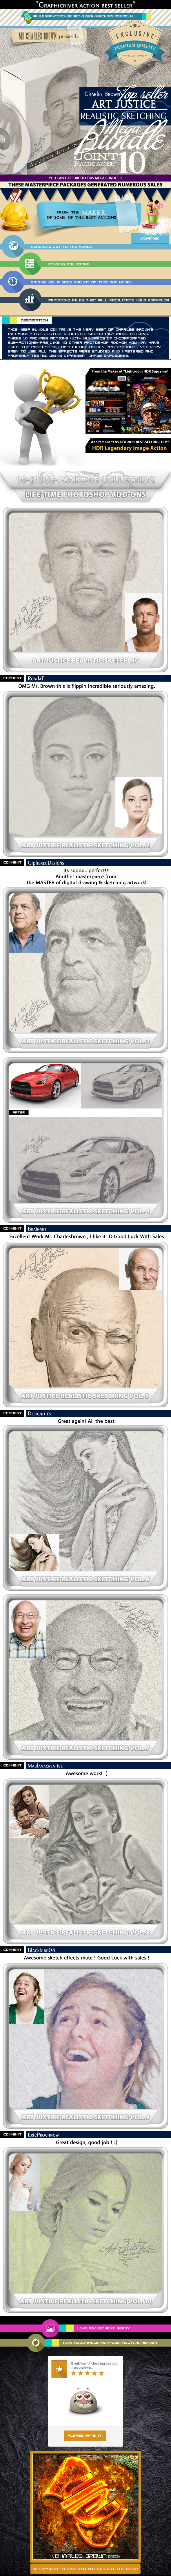 GraphicRiver All Charles Brown Art Justice Realistic Sketching 10697858